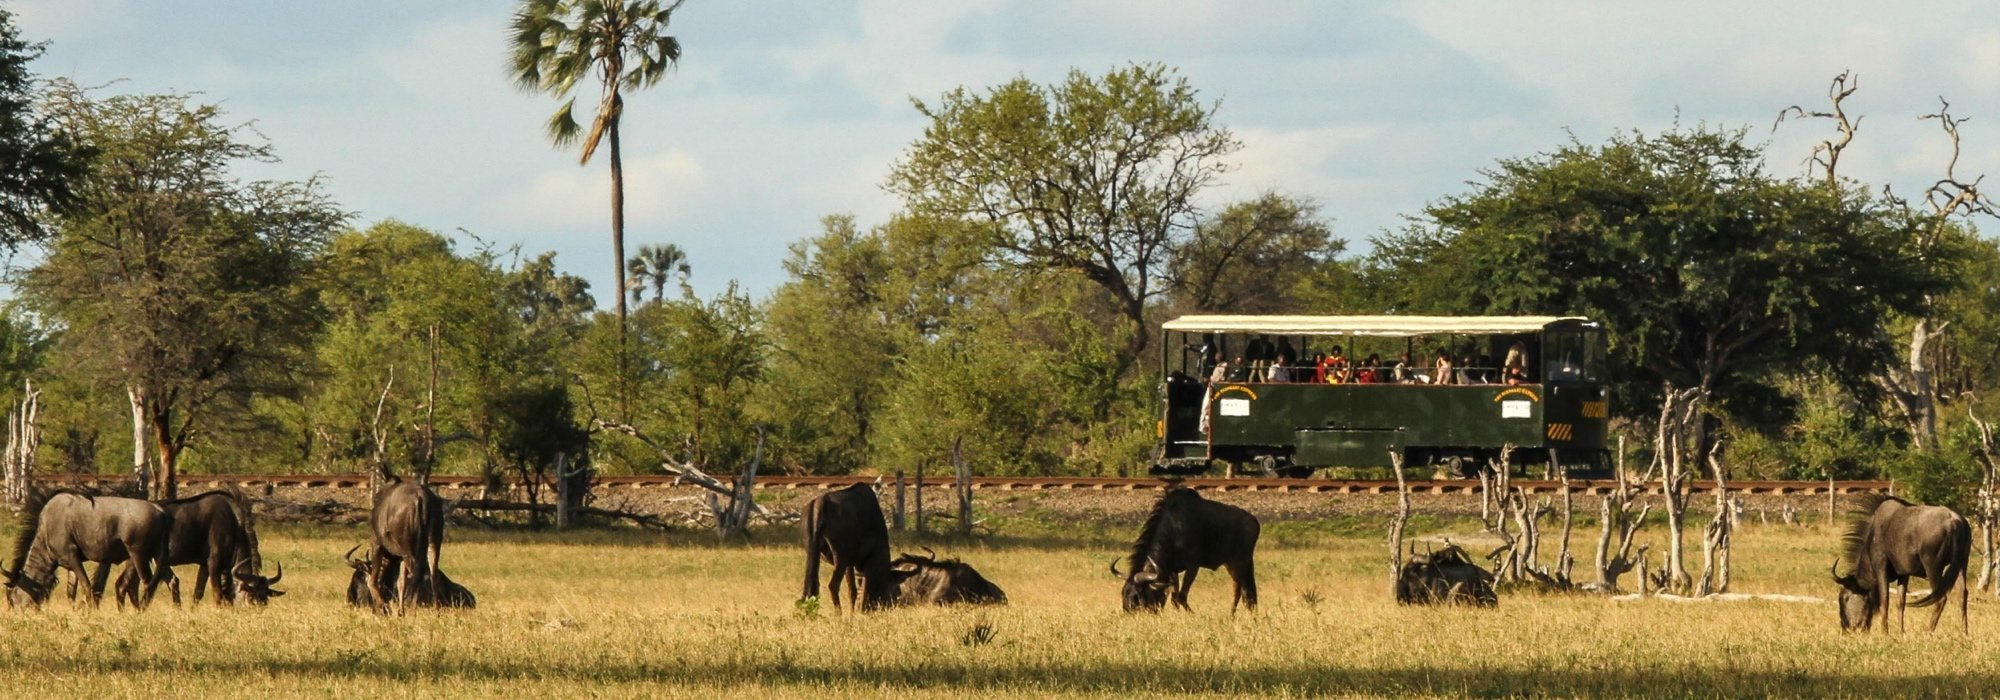 Elephant Express in Hwange National Park